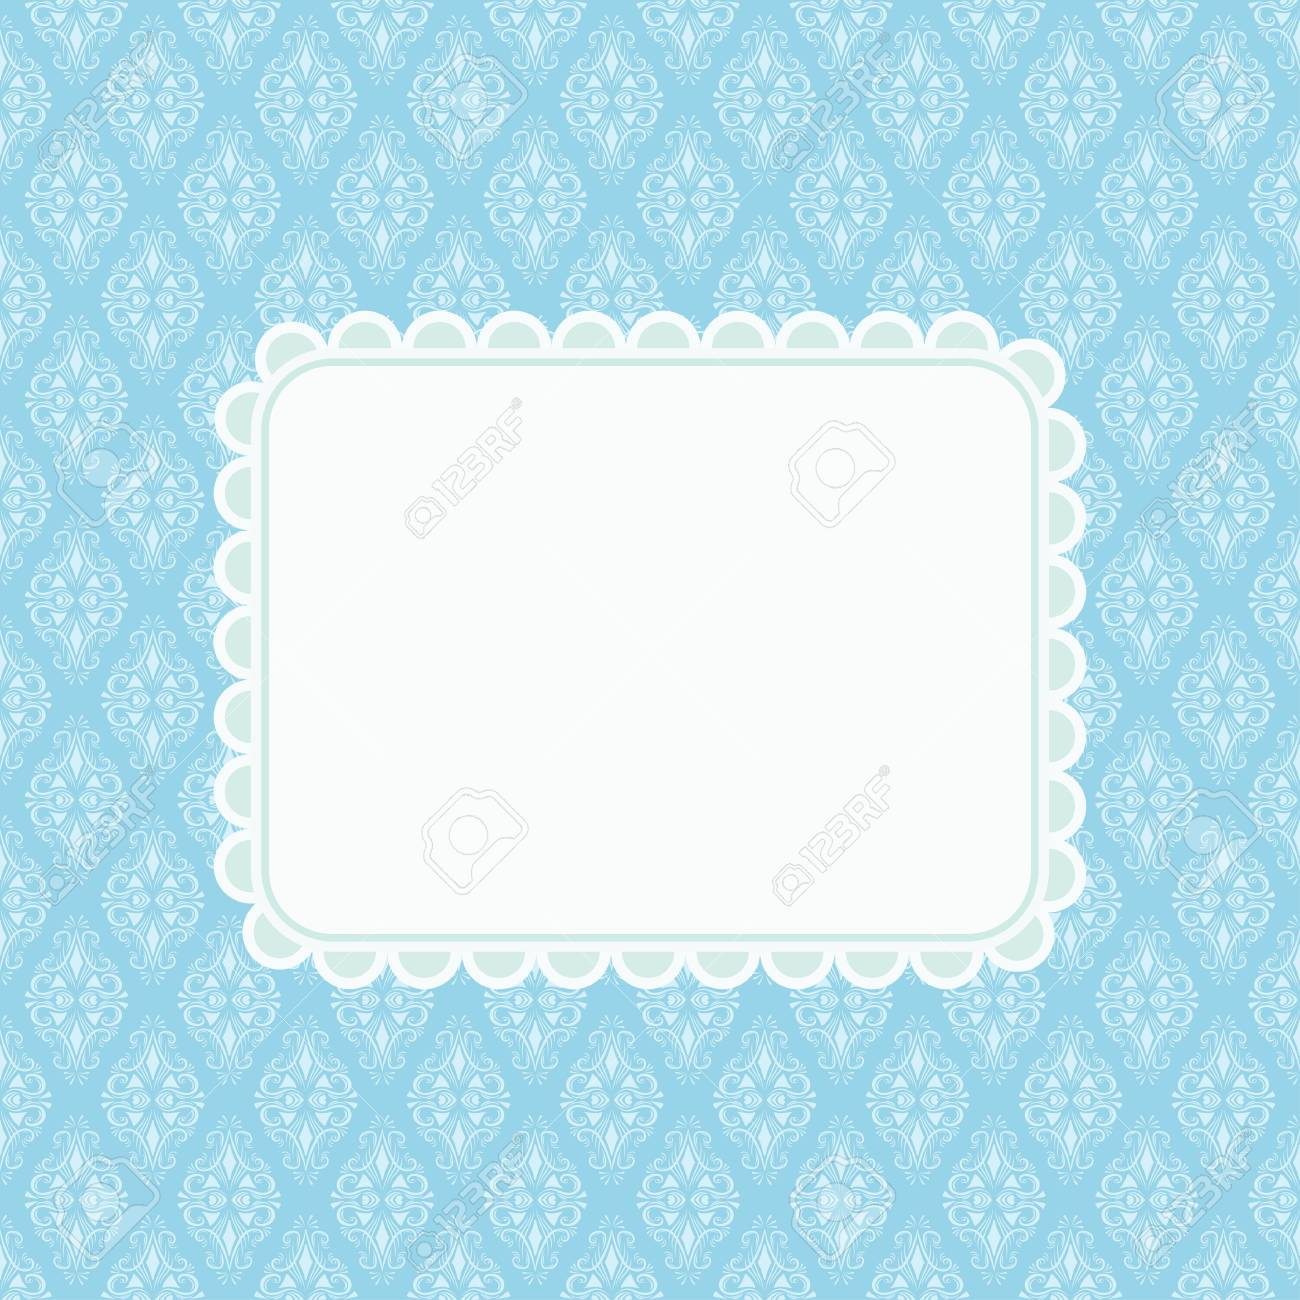 invitation card template with blank space for text on blue damask